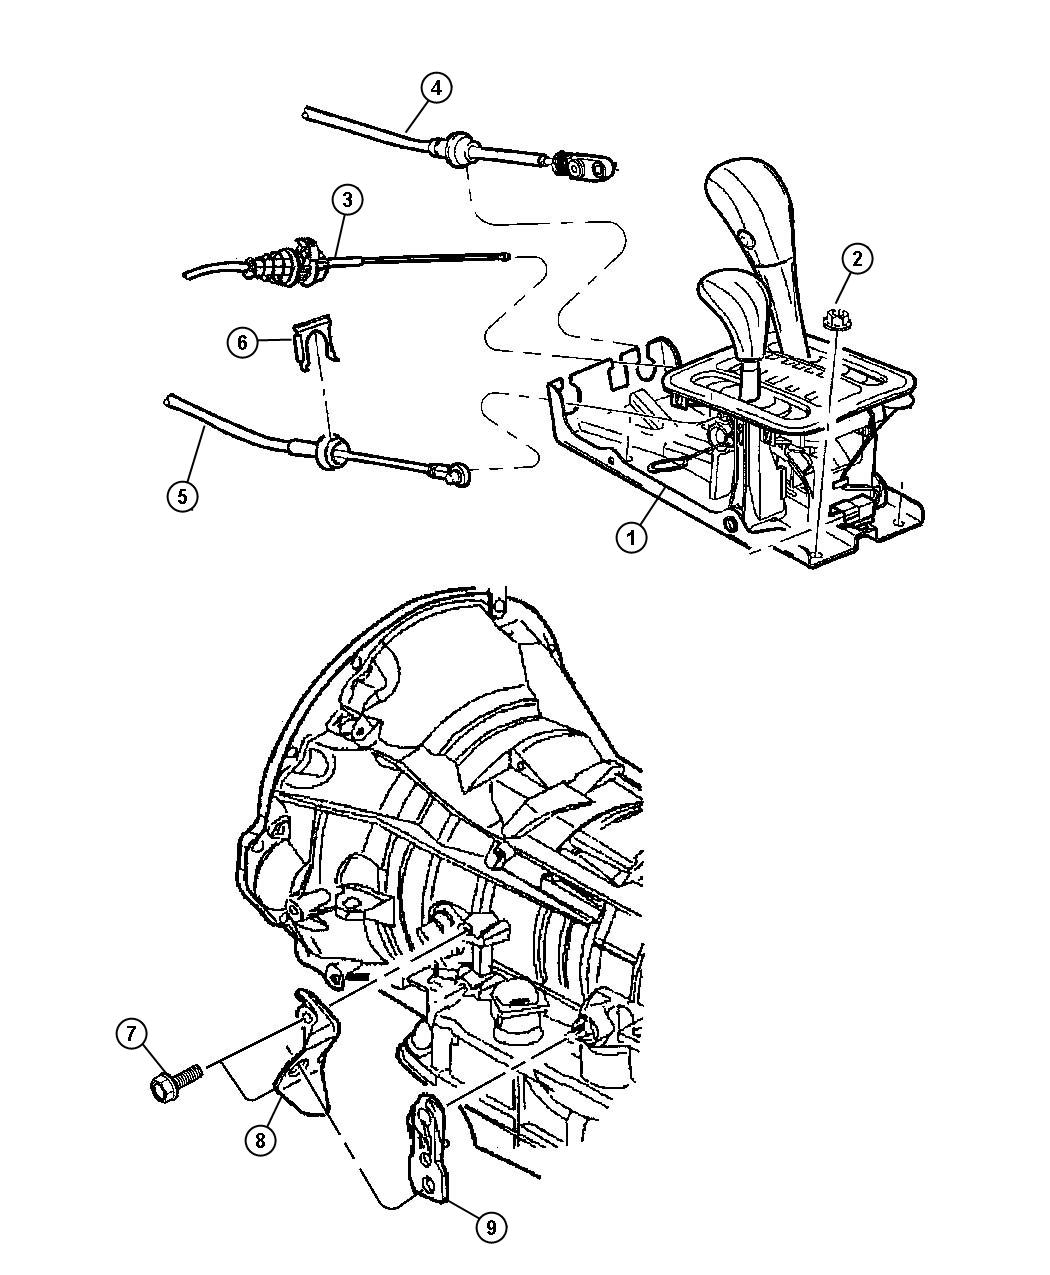 Jeep Grand Cherokee Bracket Shift Cable